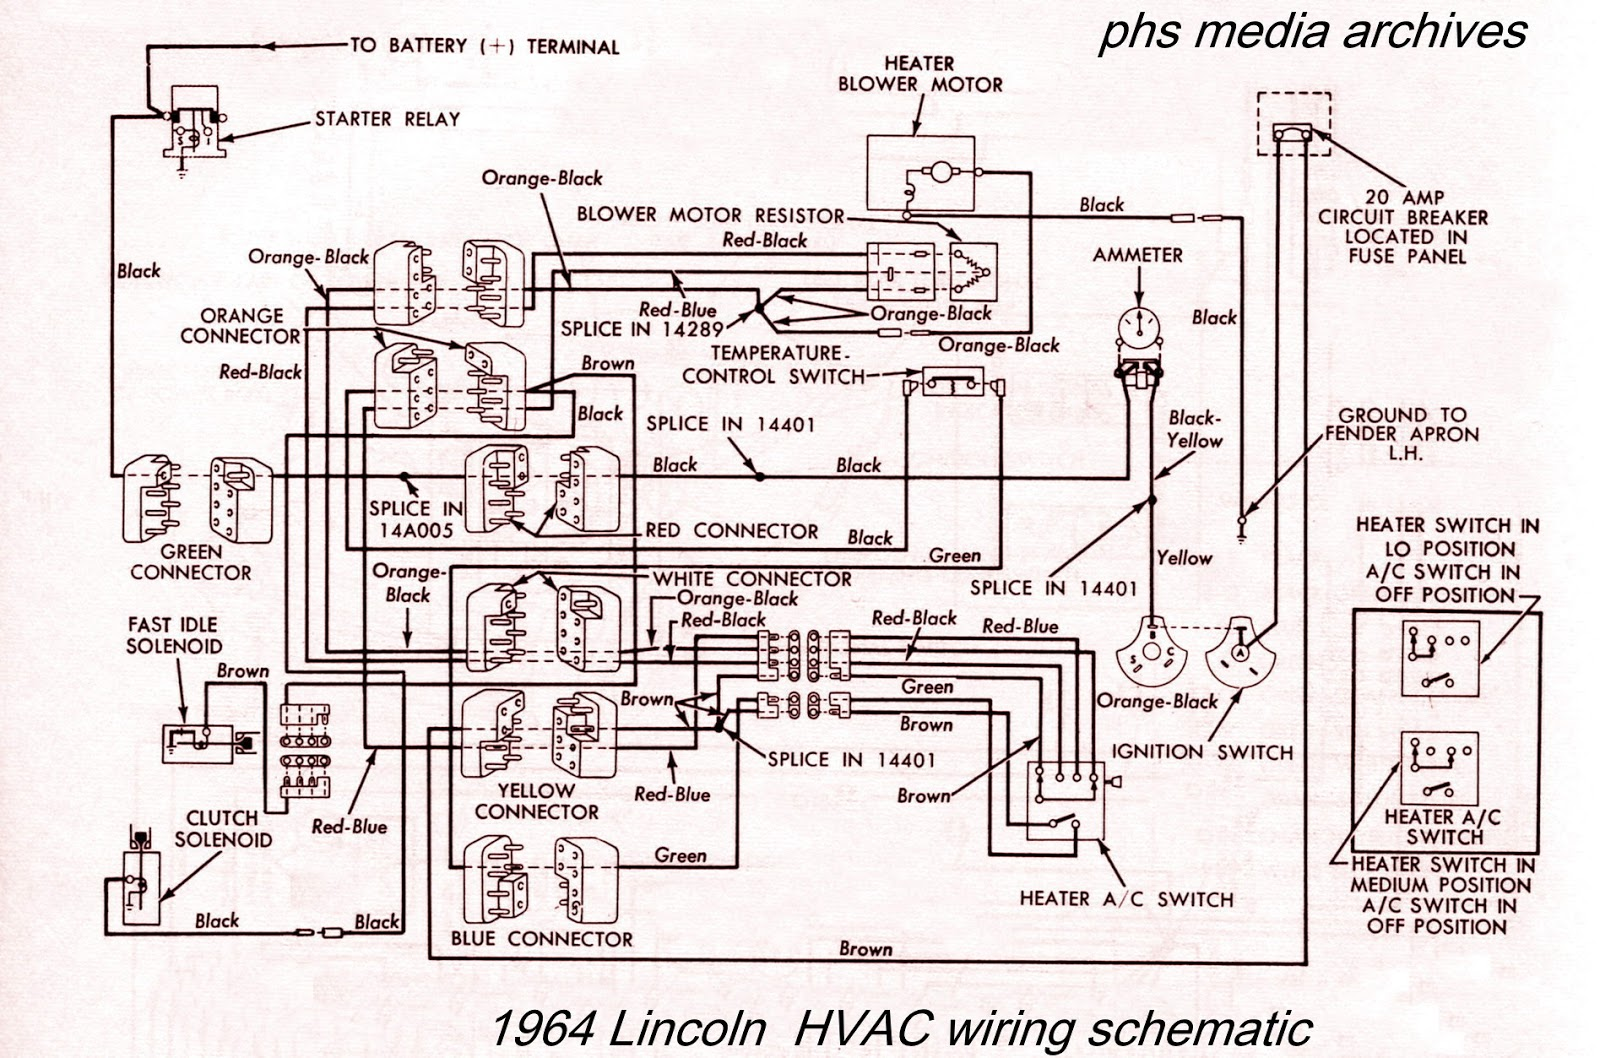 linc%2B%2B%2Bf242 tech series 1960 1964 lincoln wiring diagrams phscollectorcarworld lincoln auto greaser wiring diagram at aneh.co